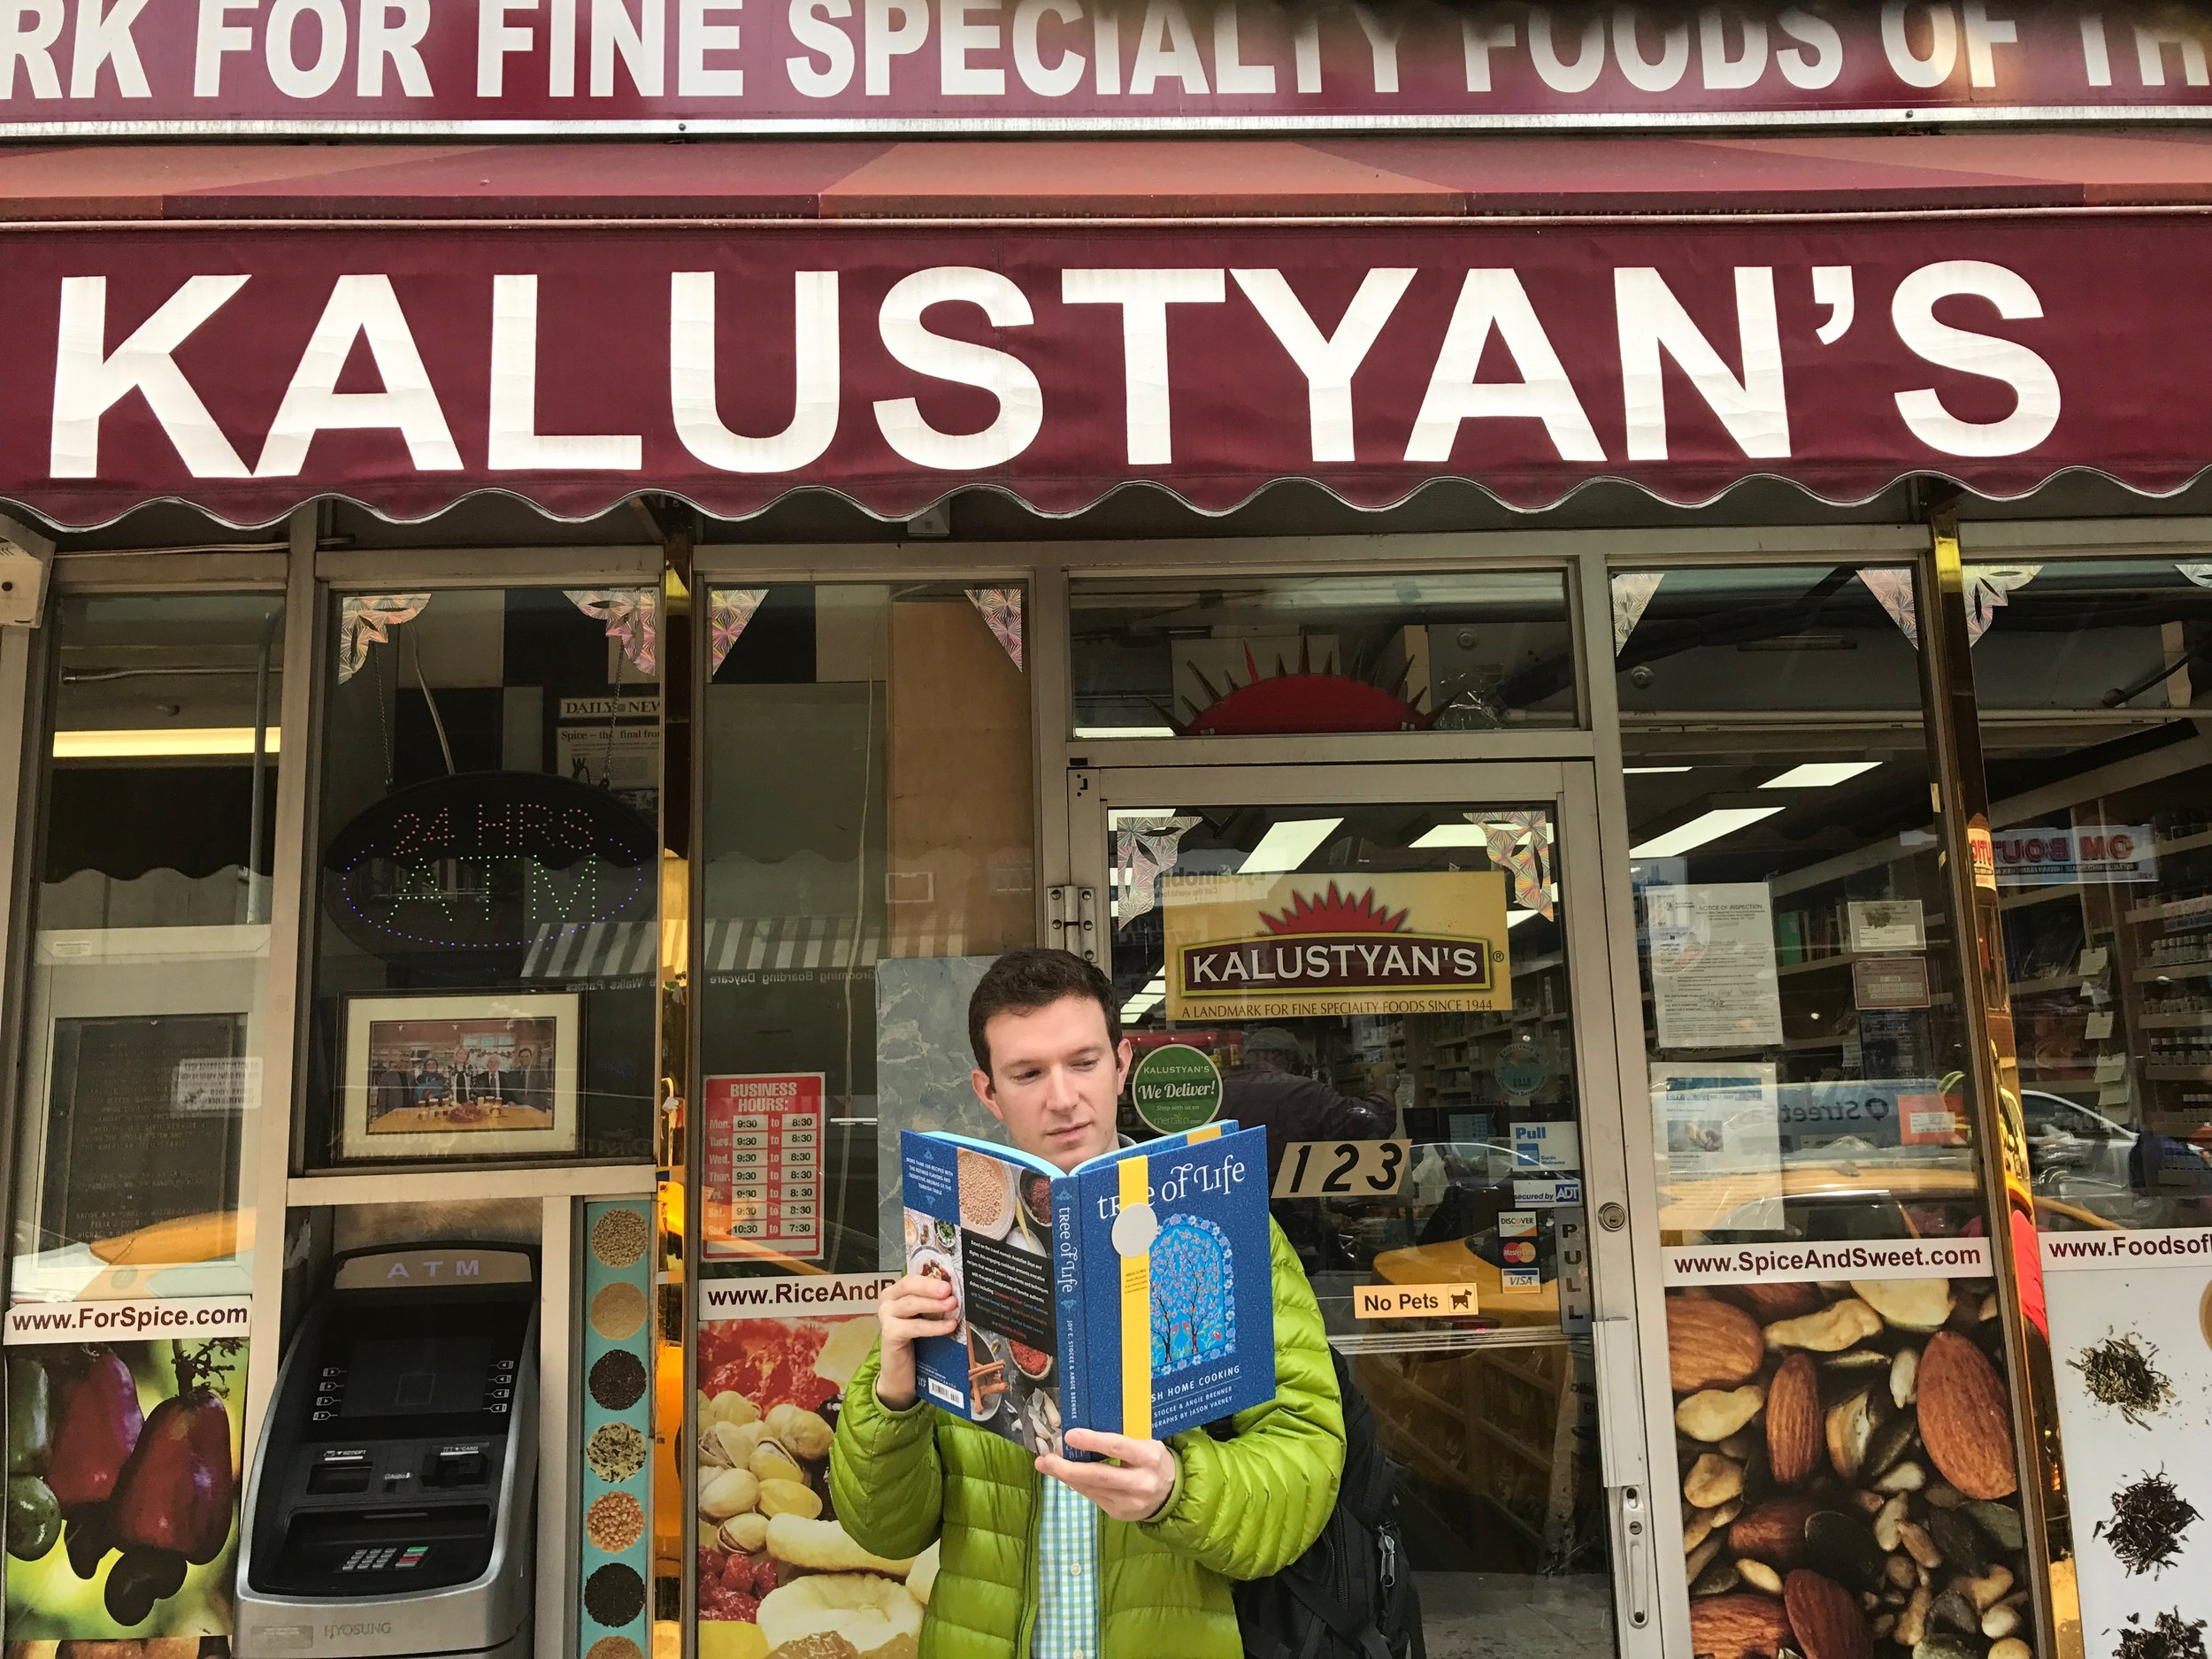 Tree of Life goes to Kalustyans in New York City.